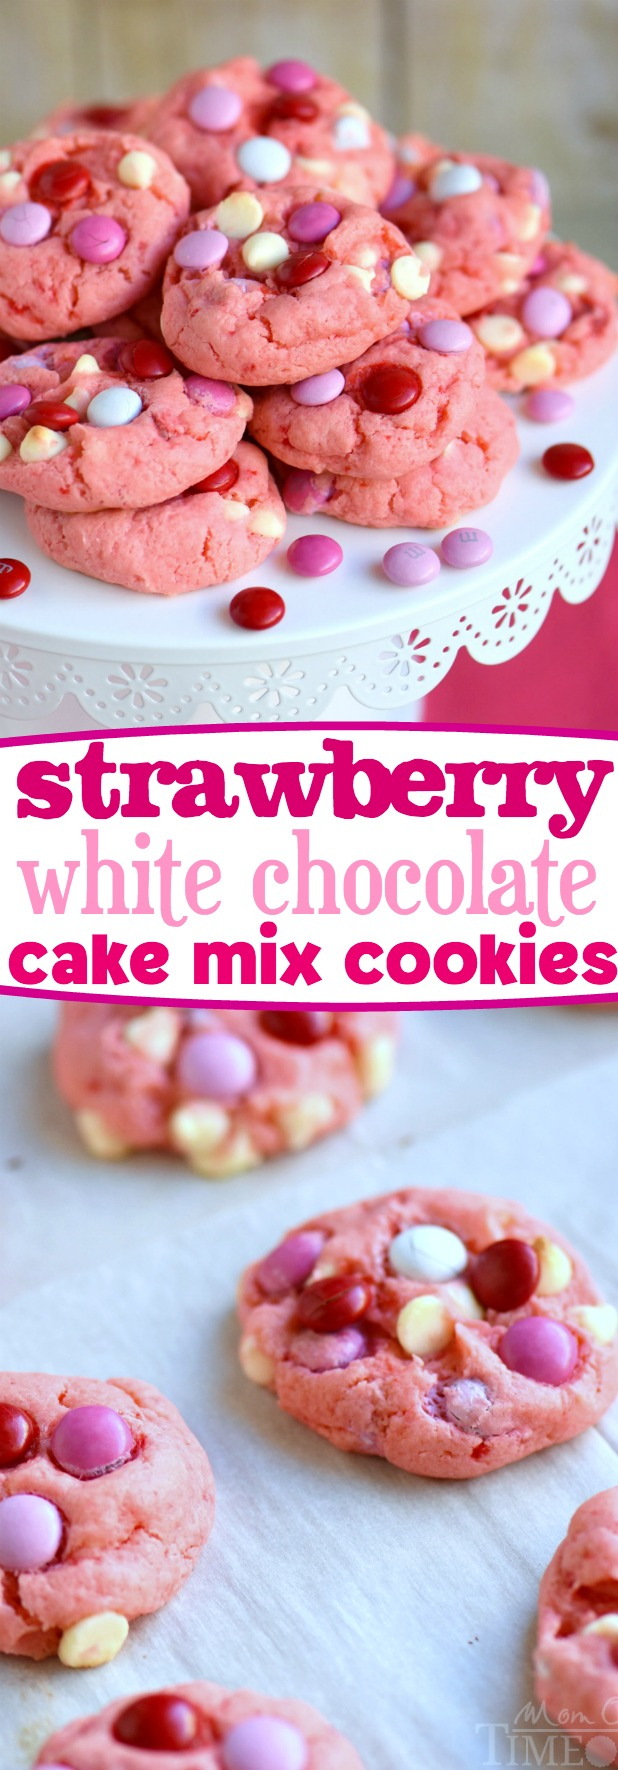 strawberry-cake-mix-cookies